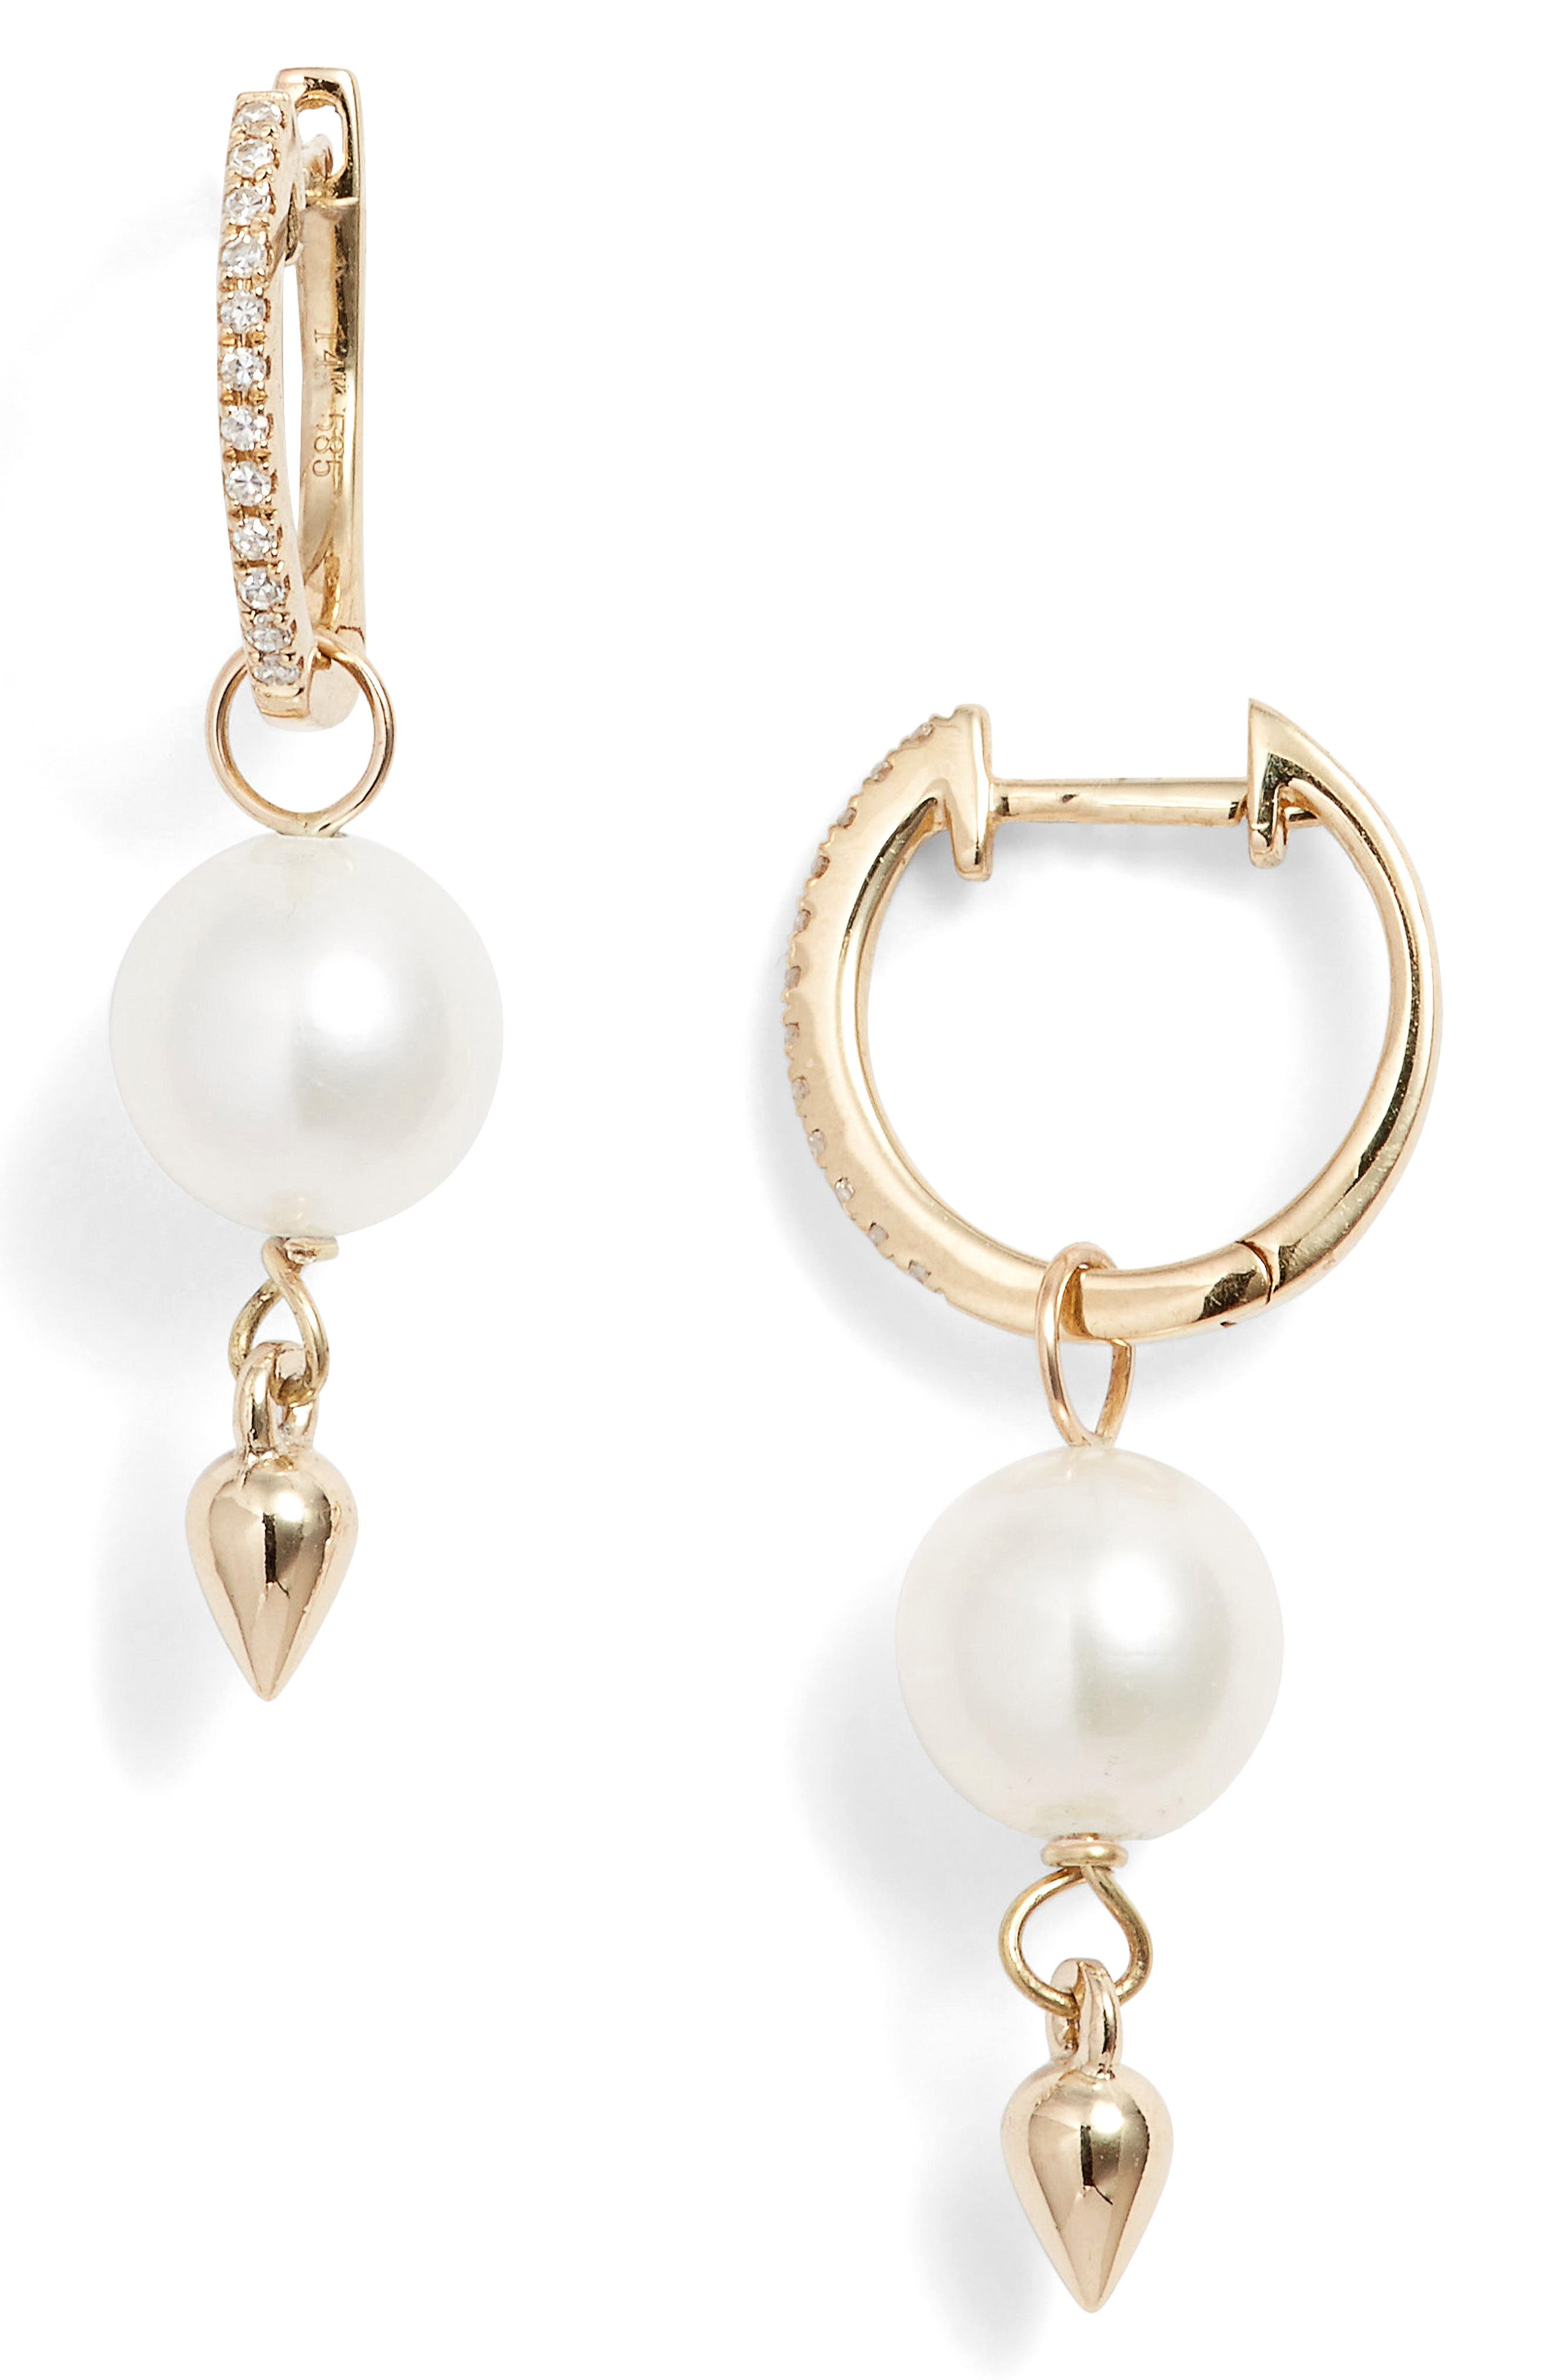 Pearl & Diamond Drop Earrings,                             Main thumbnail 1, color,                             710